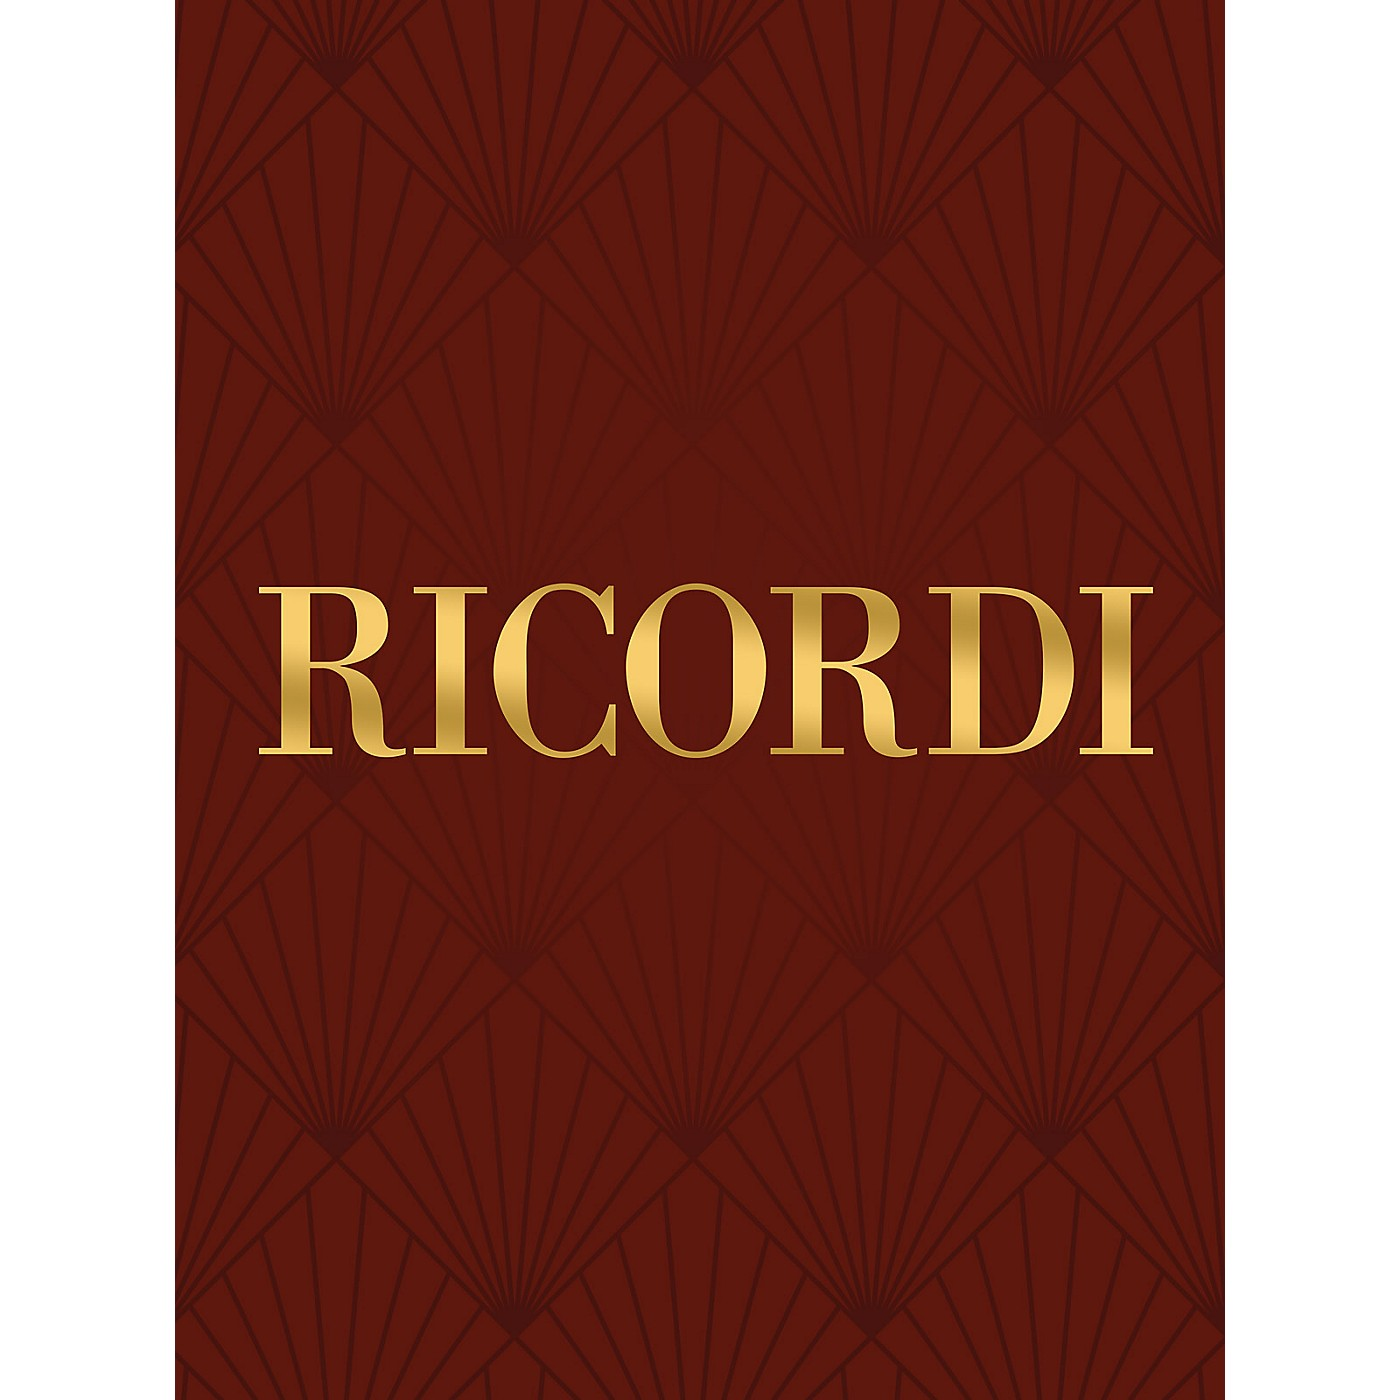 Ricordi 36 Arie nello stile antico - Volume 1 (12 Arias) Vocal Collection Series Composed by Stephano Donaudy thumbnail